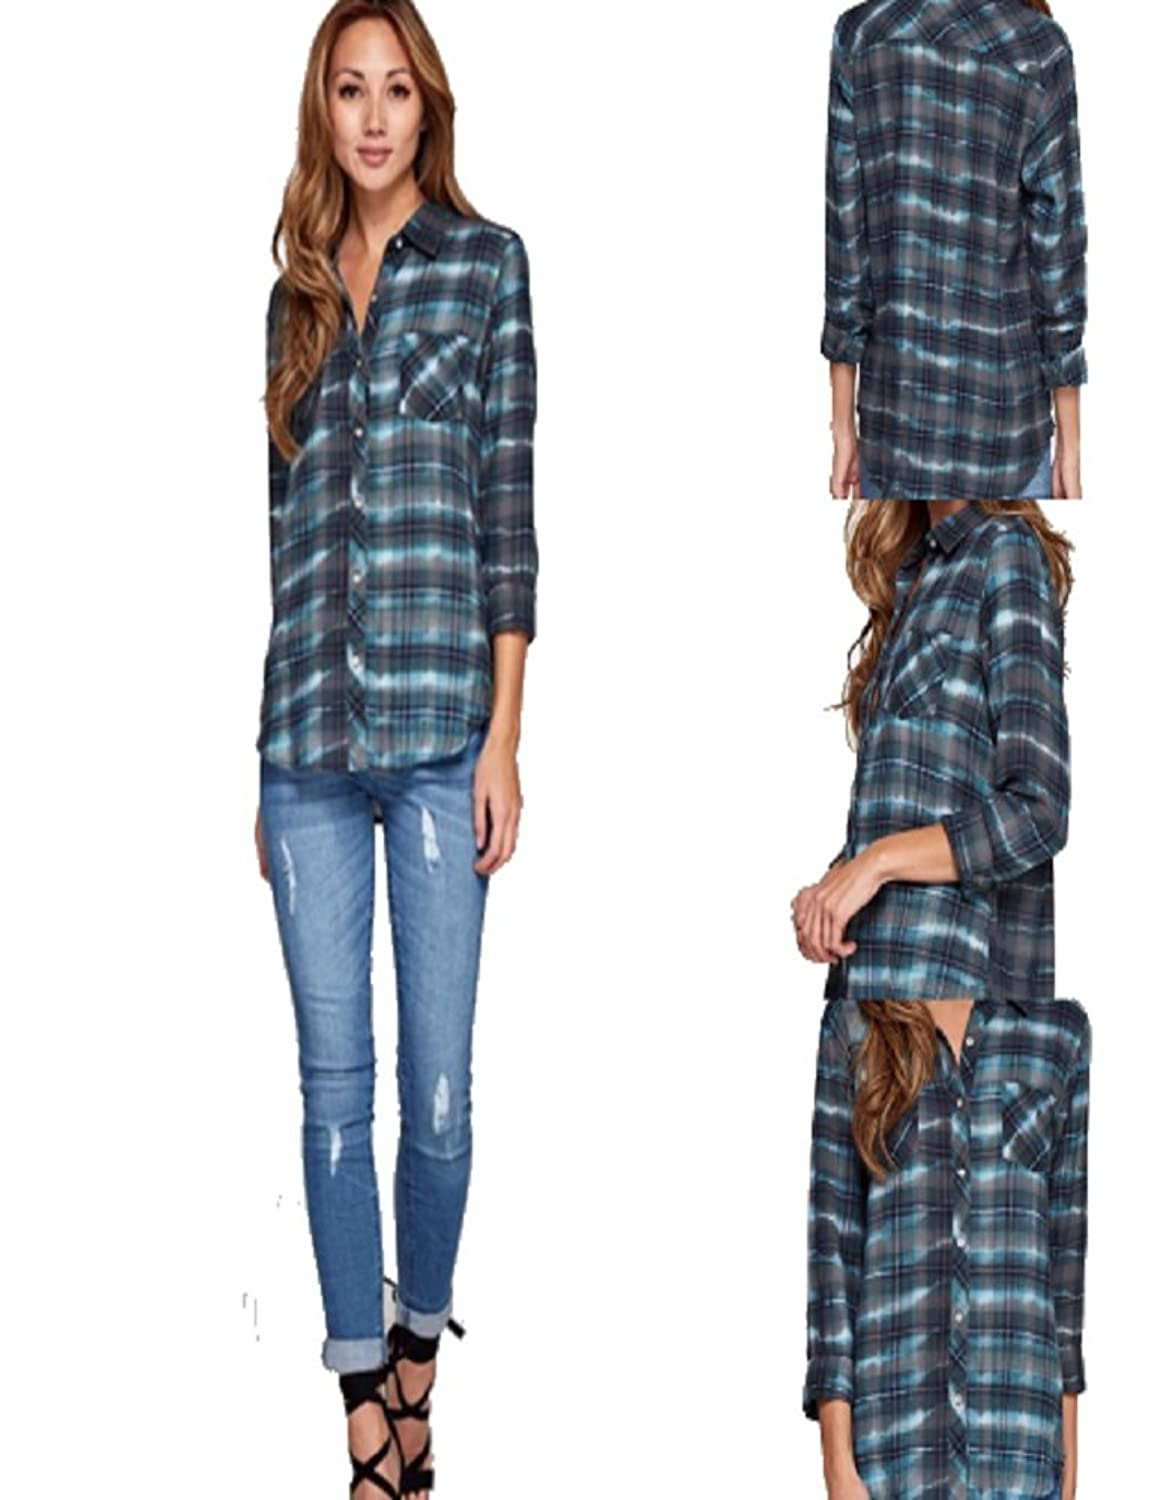 Love Stitch Charcoal and Turq Tie Dyed Plaid Shirt